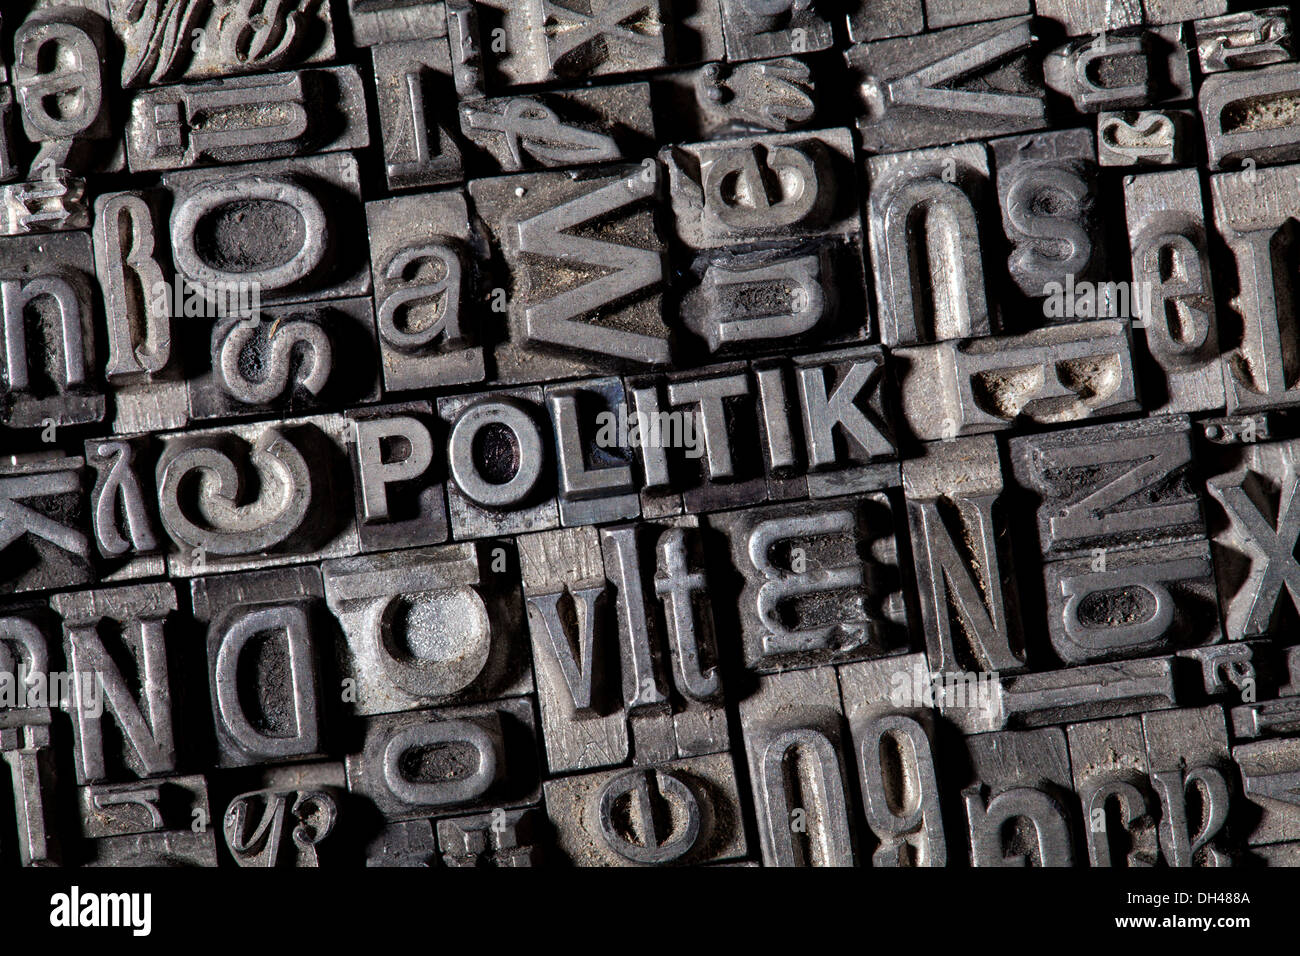 Old lead letters forming the word 'POLITIK', German for 'POLITICS' - Stock Image